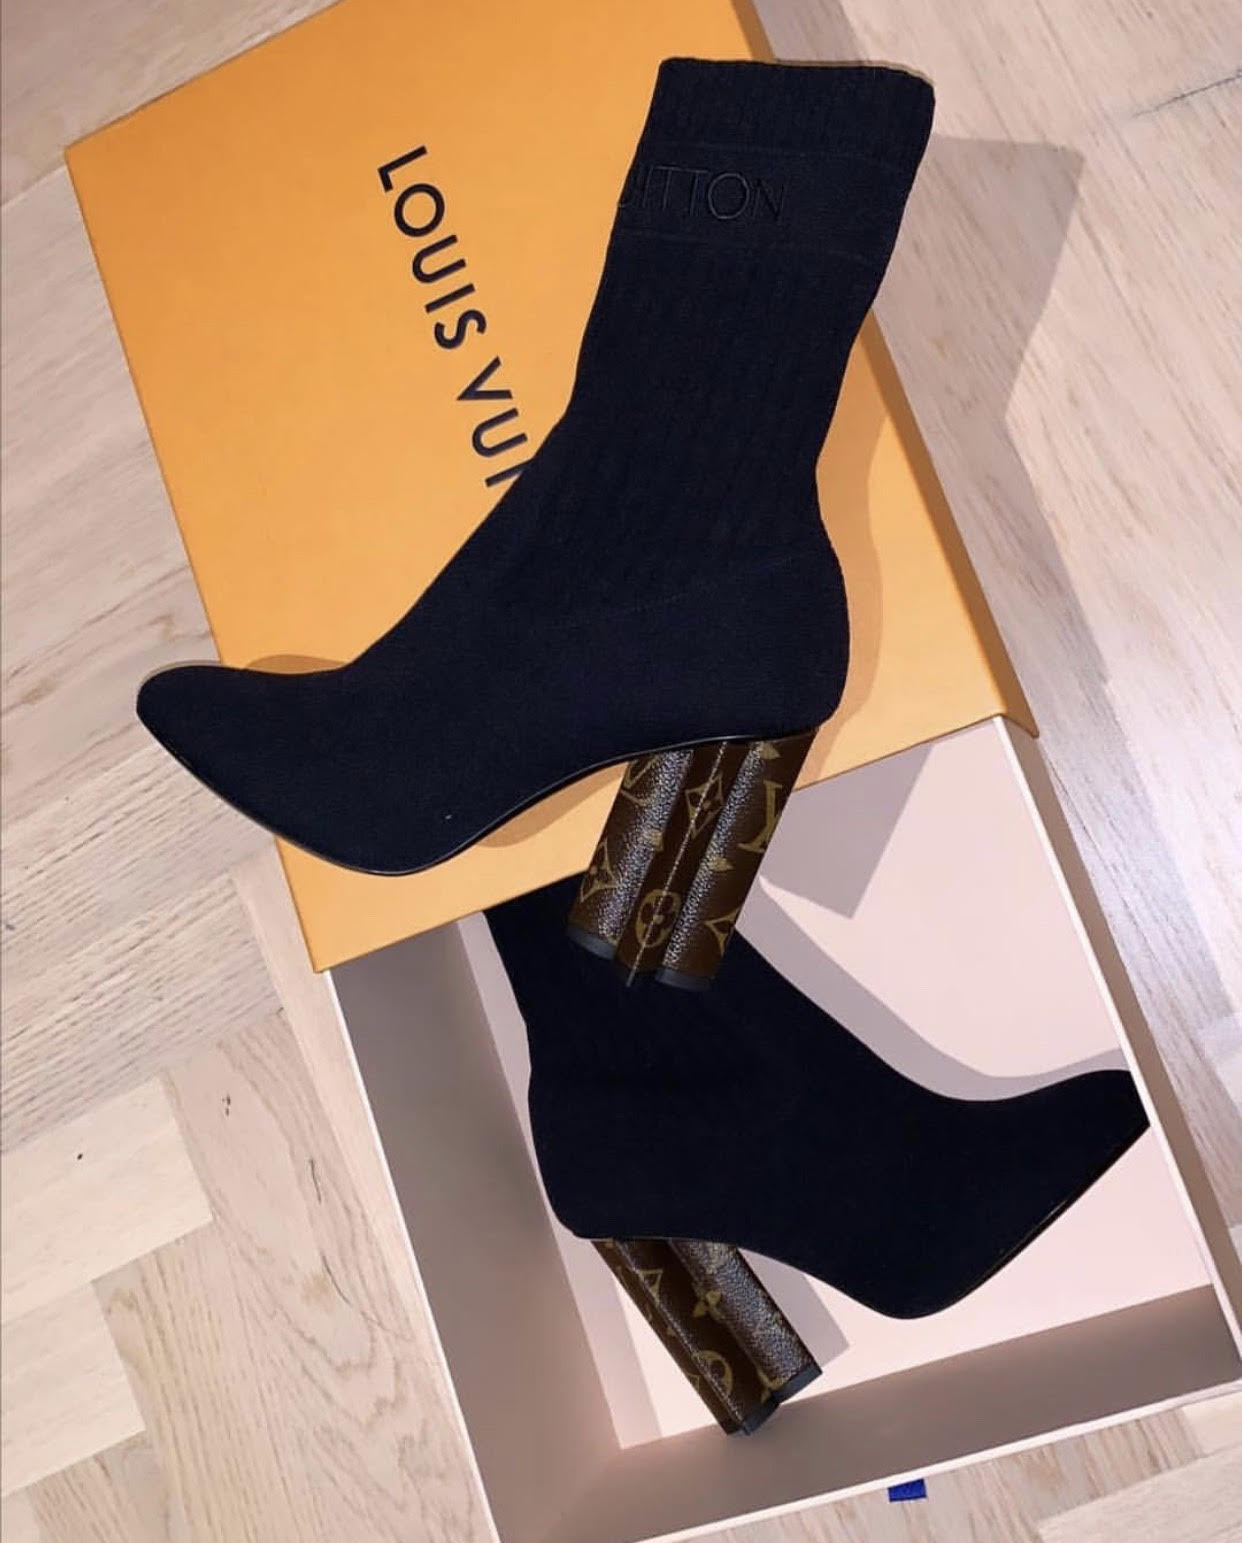 4a22bff38743d1 Today Im going to show you guys some different models of Louis Vuitton  Silhouette Ankle boot. The request for these type of boots is very high and  they are ...